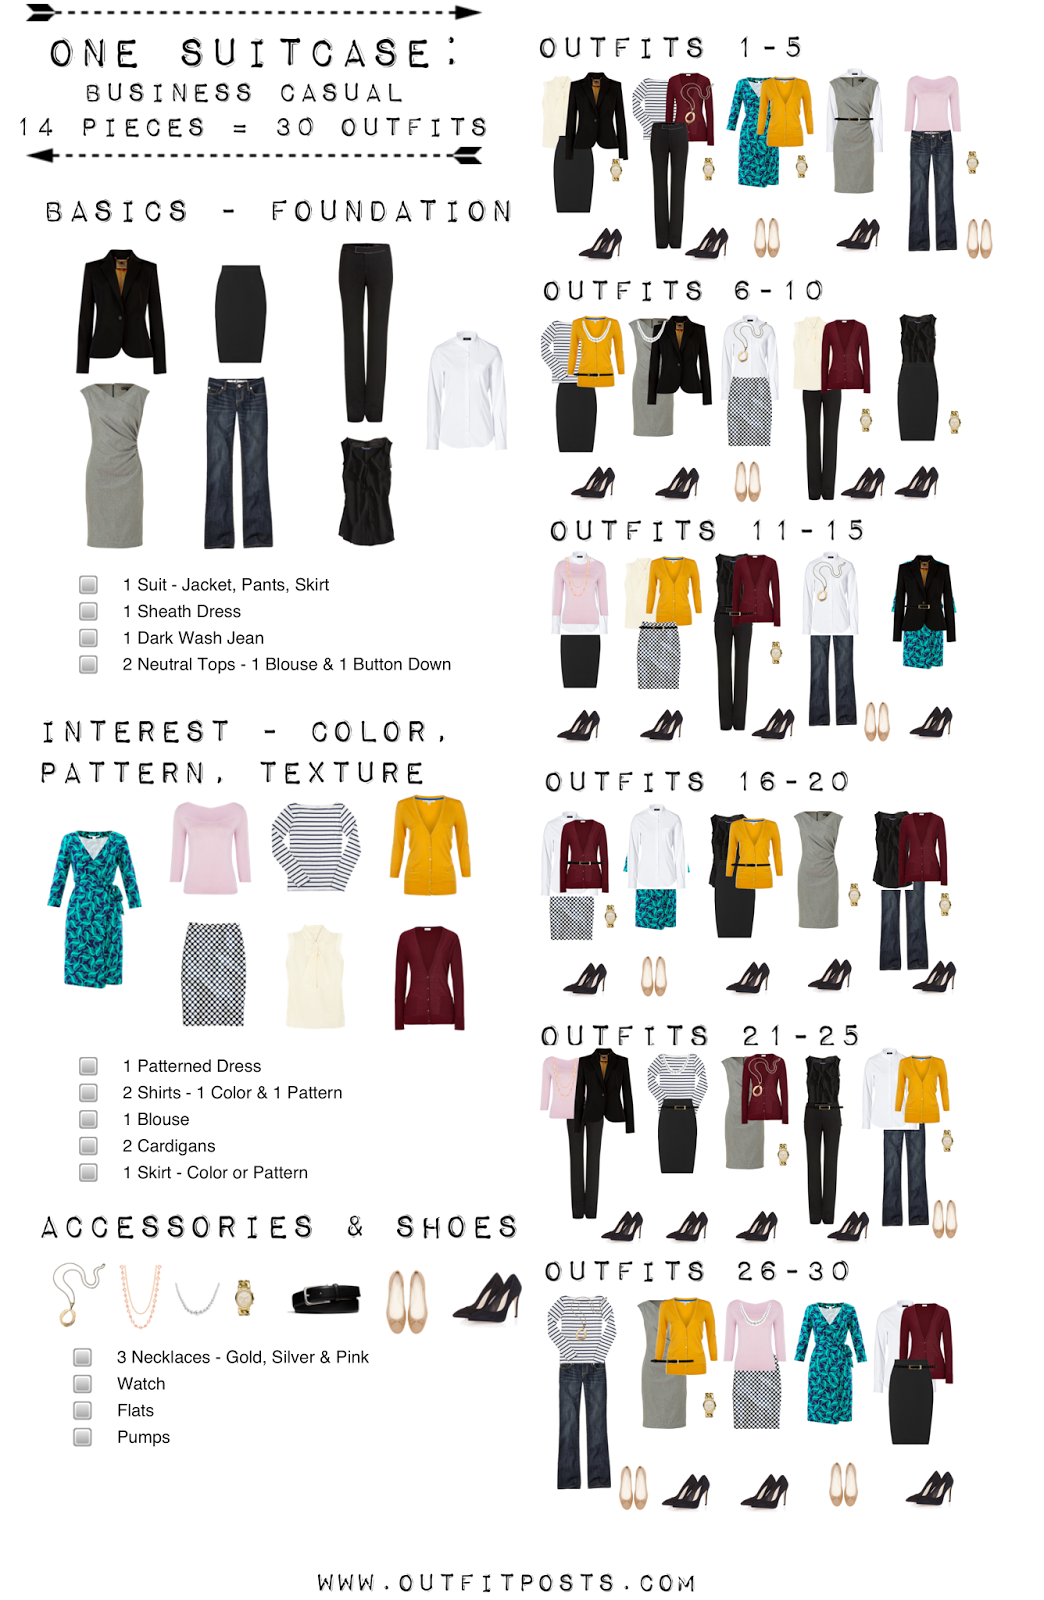 Watch Capsule Wardrobe Checklist – How To Build Your Own video